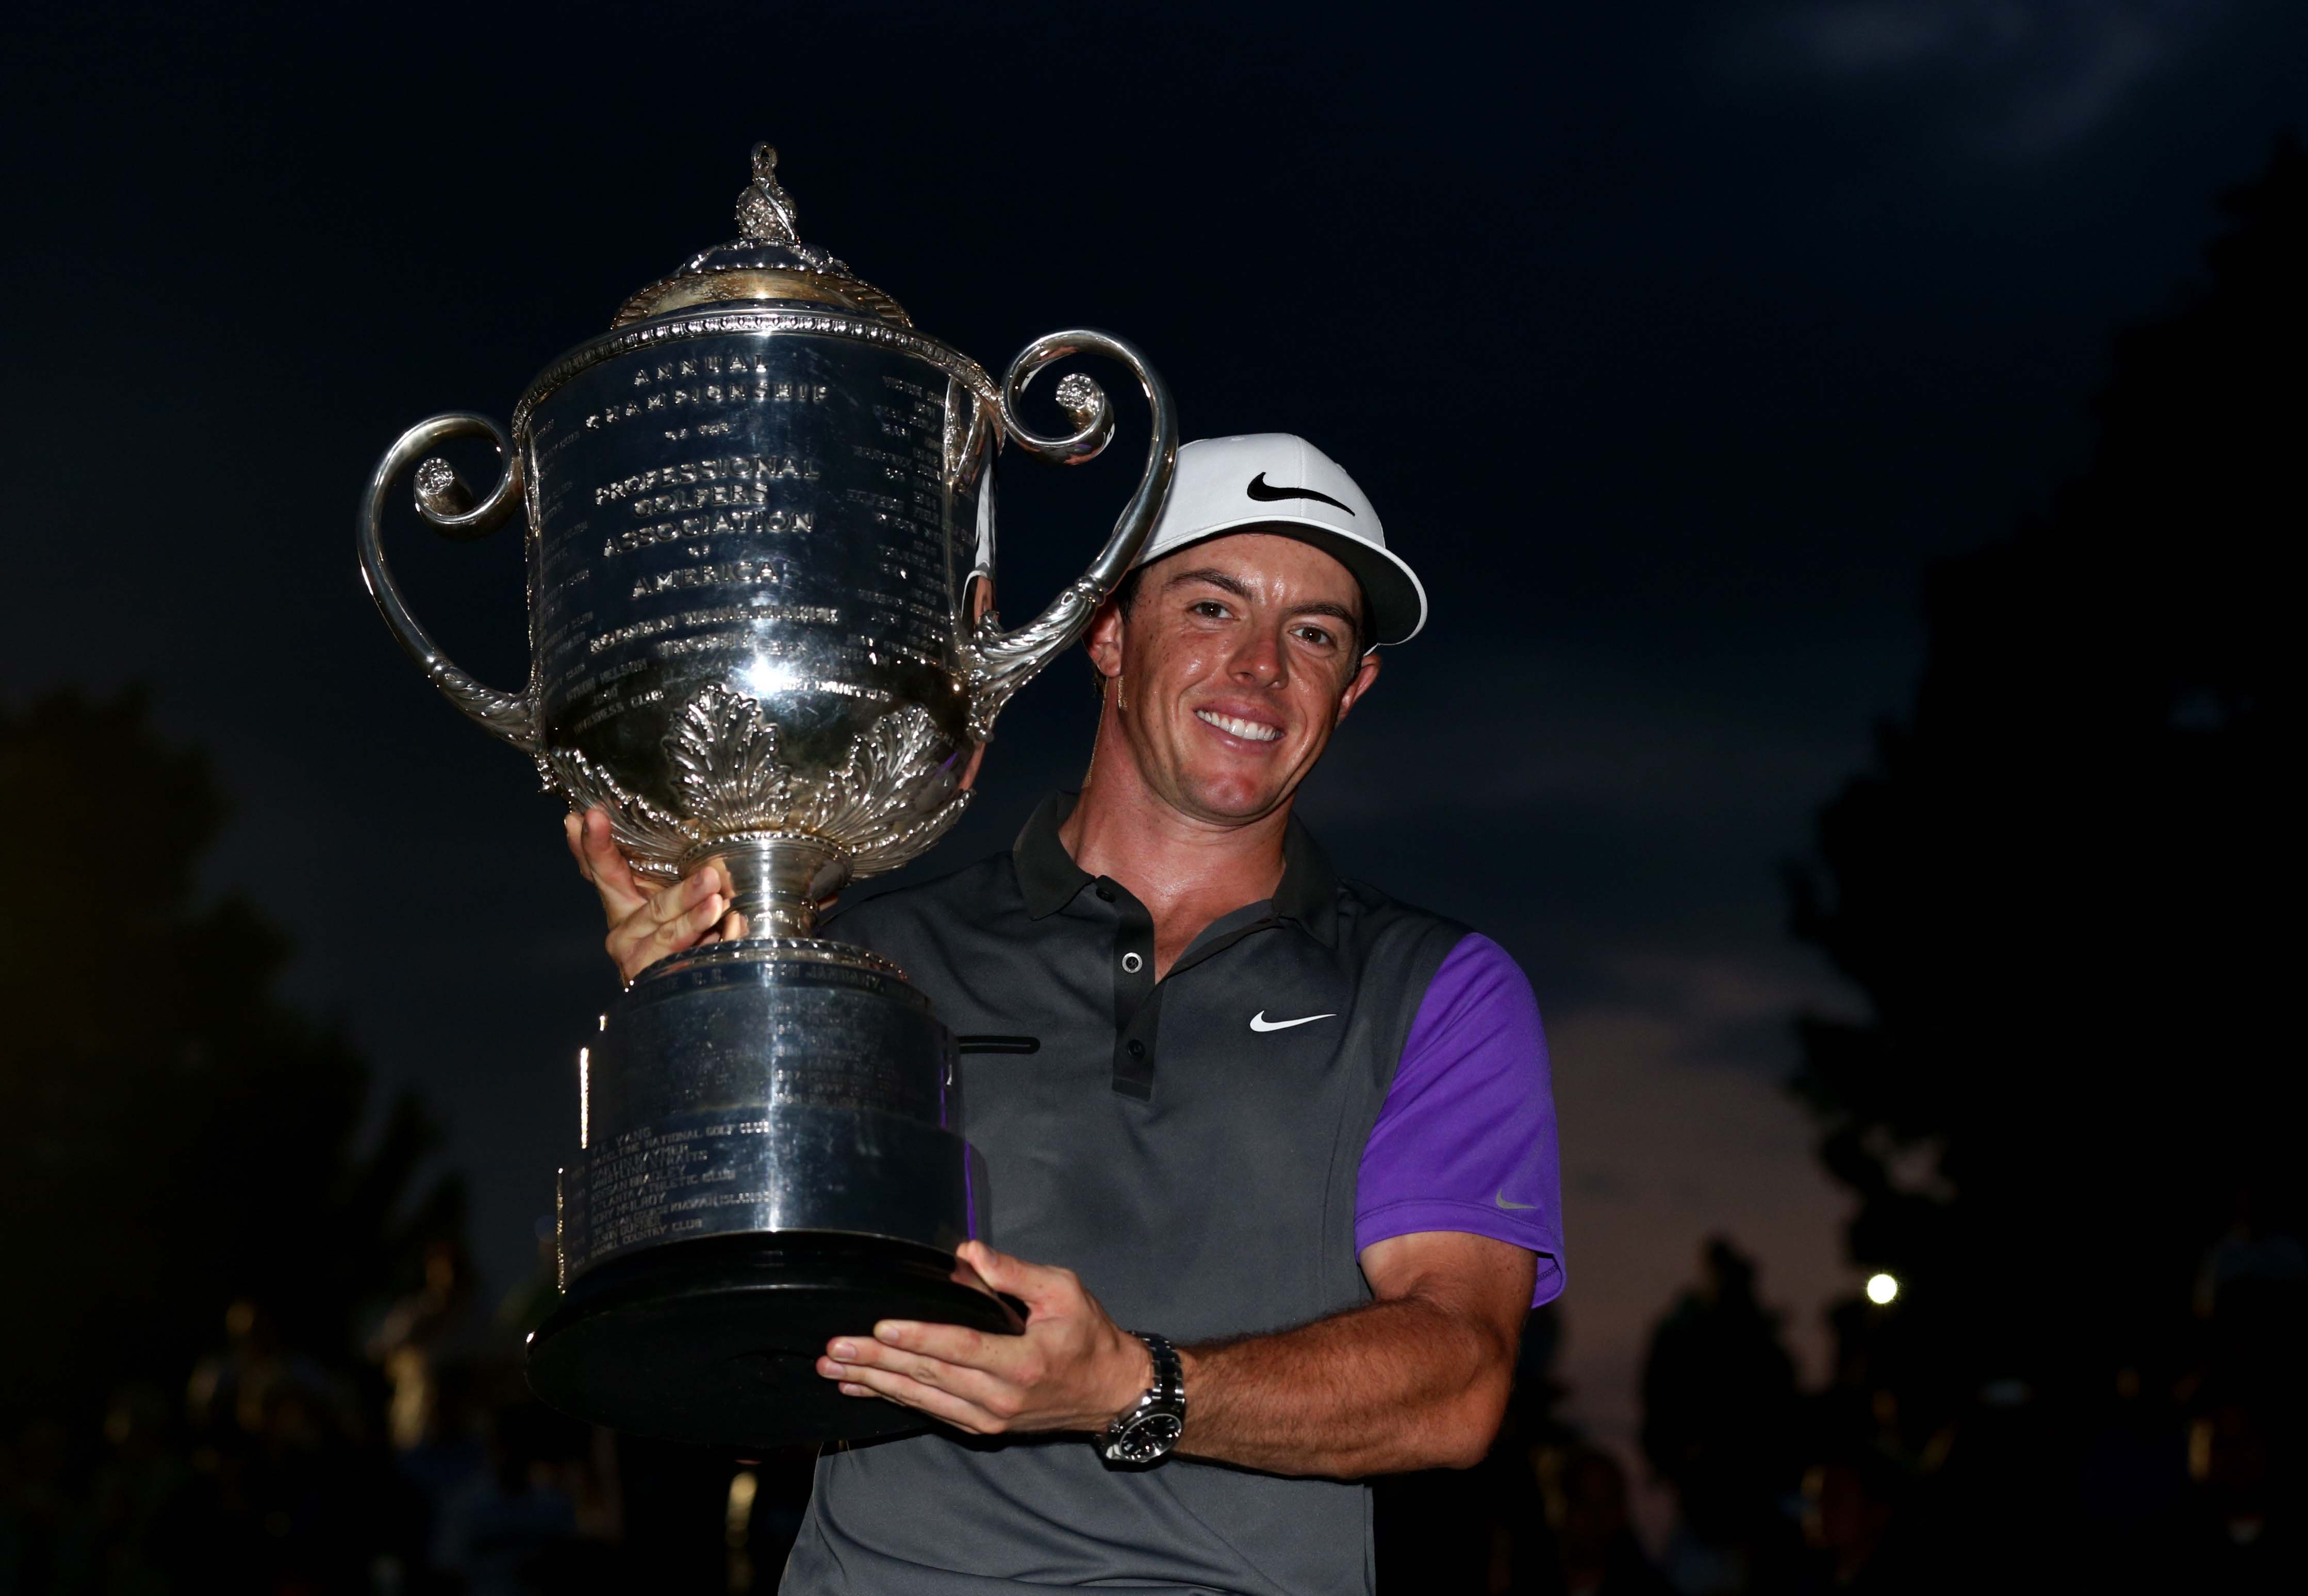 5. PGA concludes in dark, with final 'foursome'